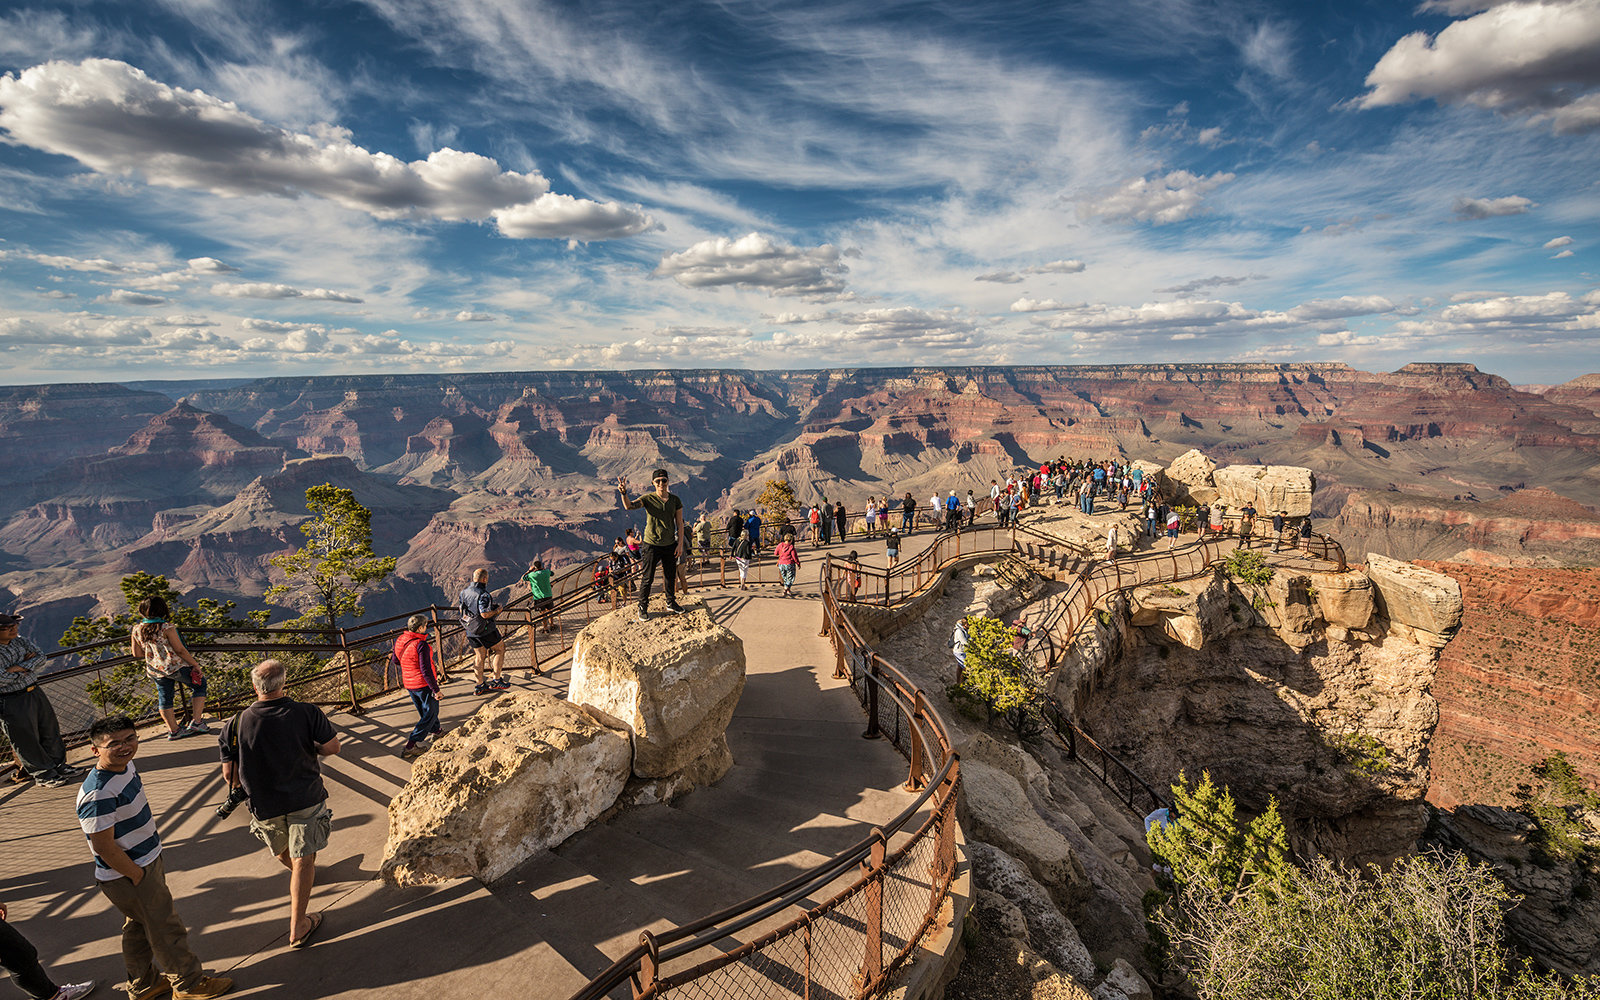 Best Spot to Visit in 20 National Parks for First Timers According to 2 Brothers Visiting Them All